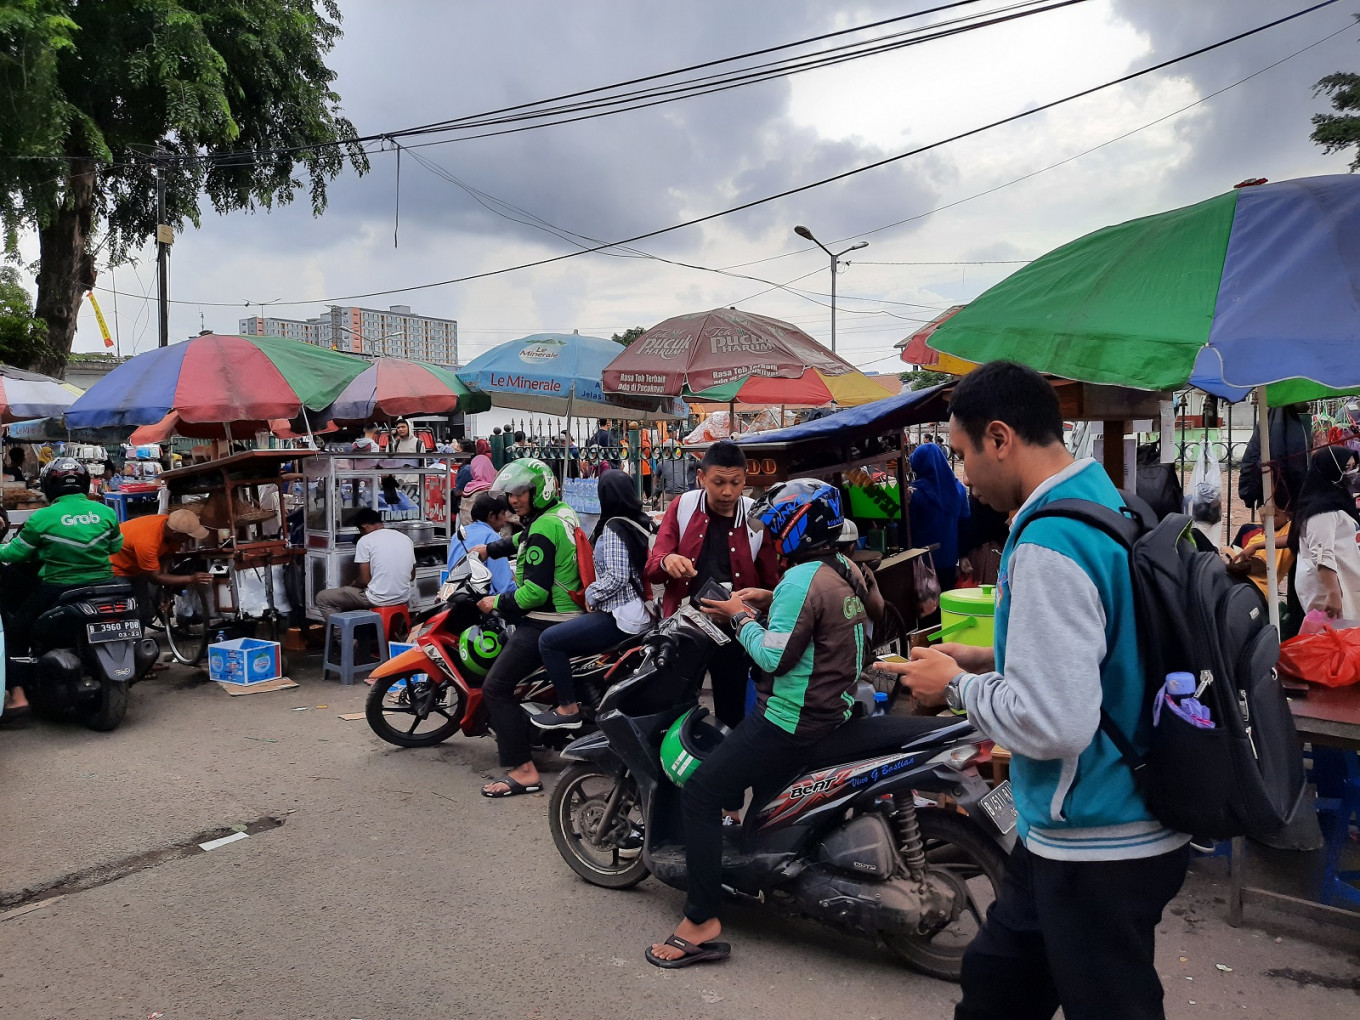 'Fifty drivers fight for one order': Southeast Asia gig economy slammed by virus